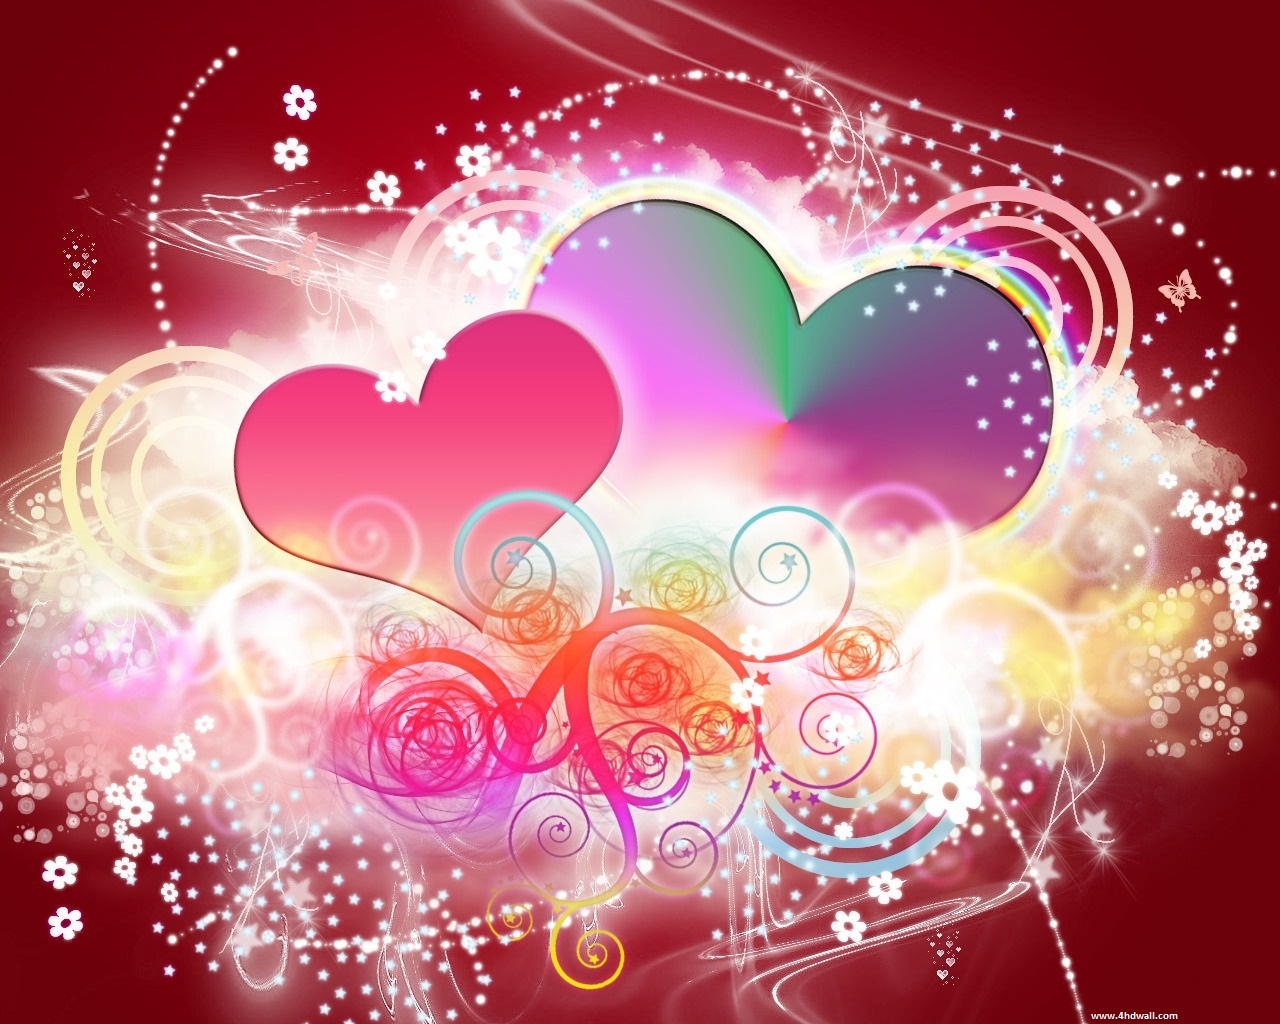 hd wallpapers for desktop: Beautiful Valentine Wallpapers